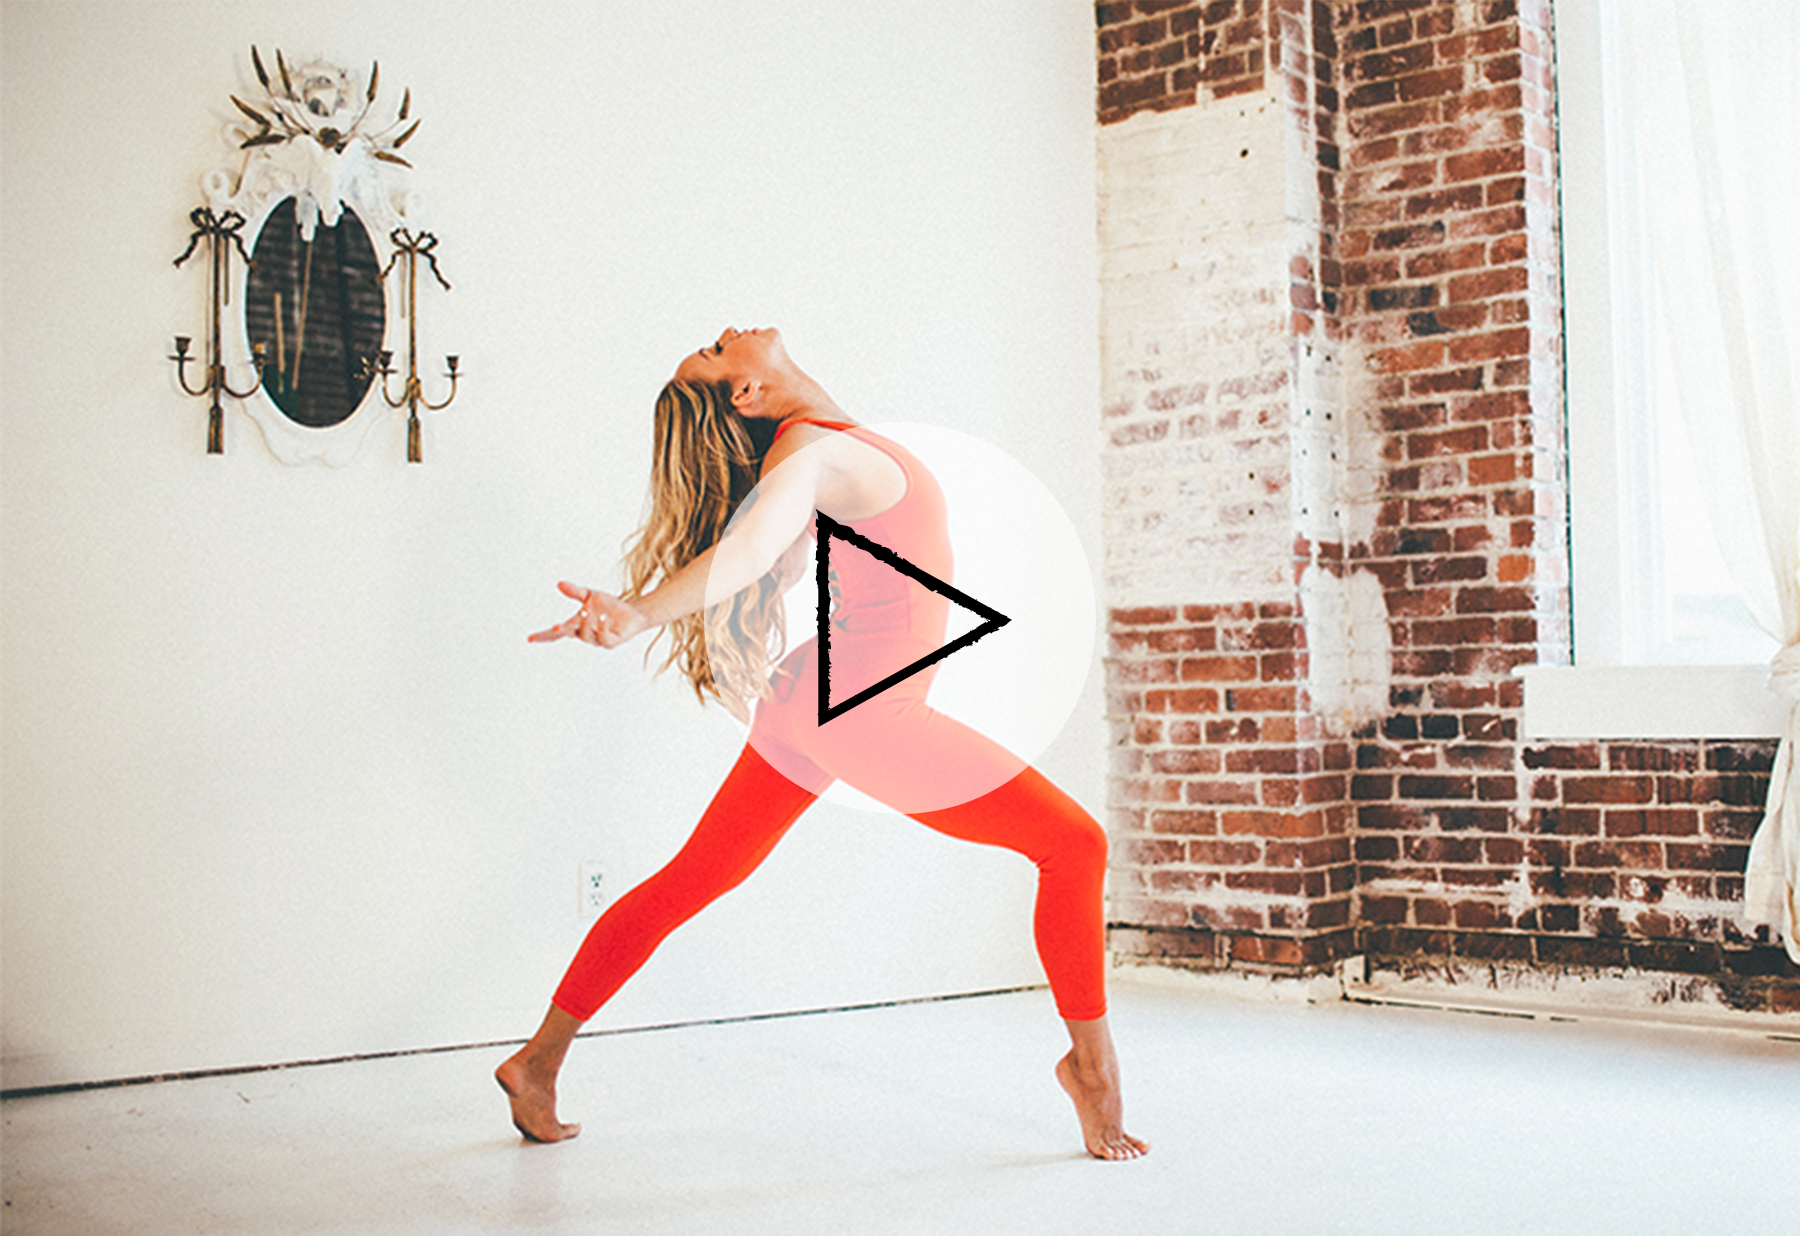 Cardio Workouts: A 14-Minute Total-Body Dance Routine